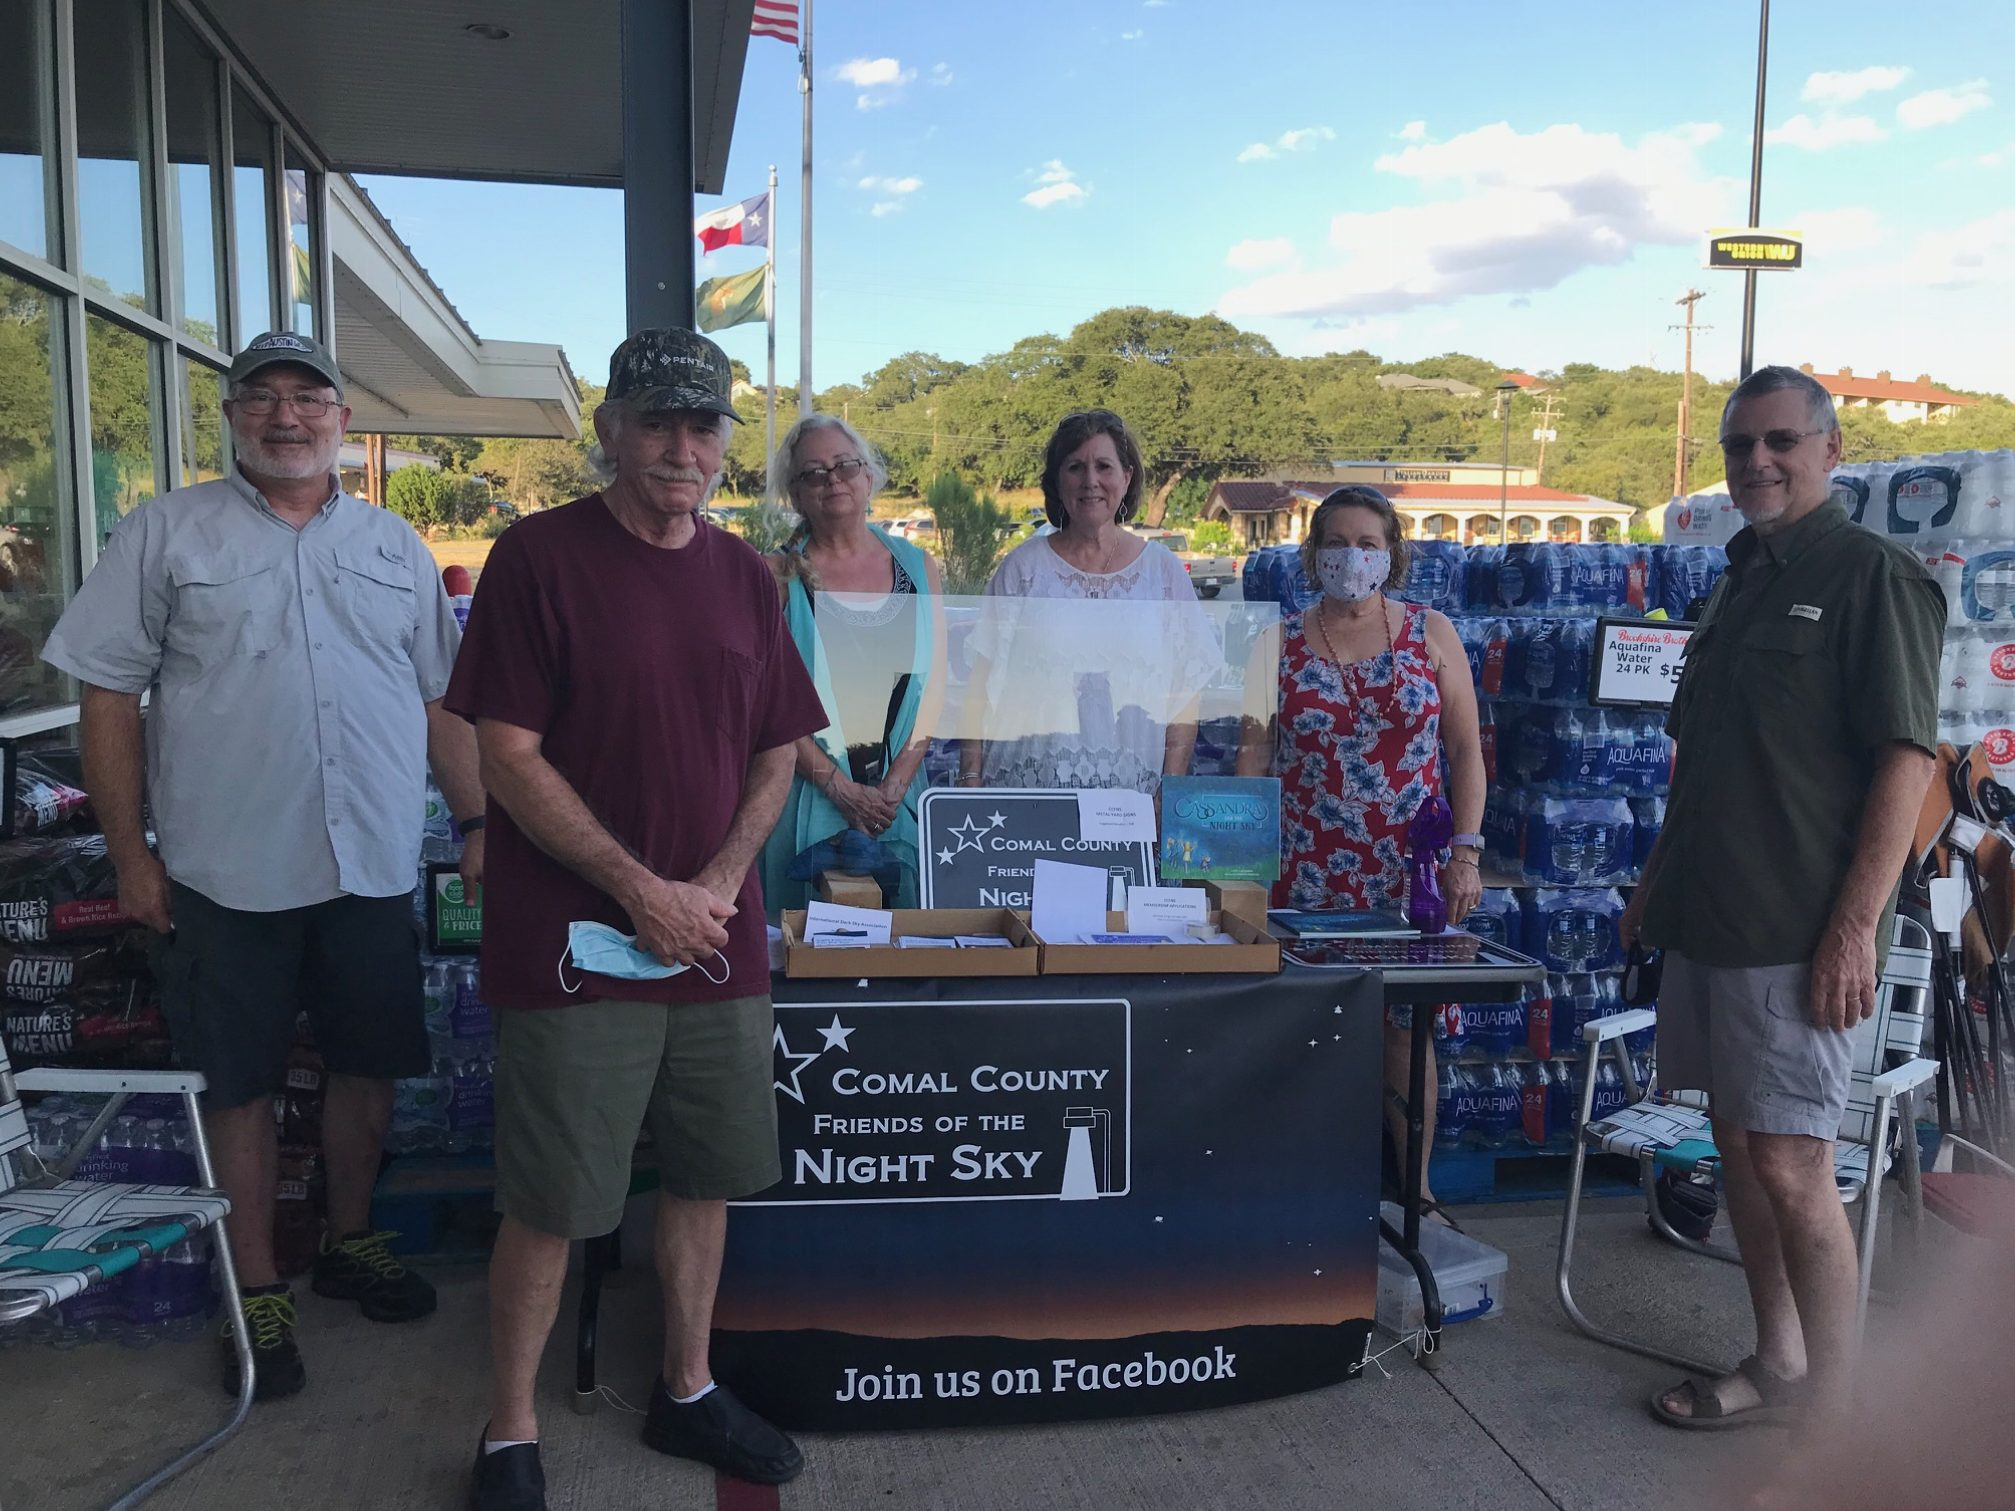 Catch some falling stars with Comal County Friends of the Night Sky